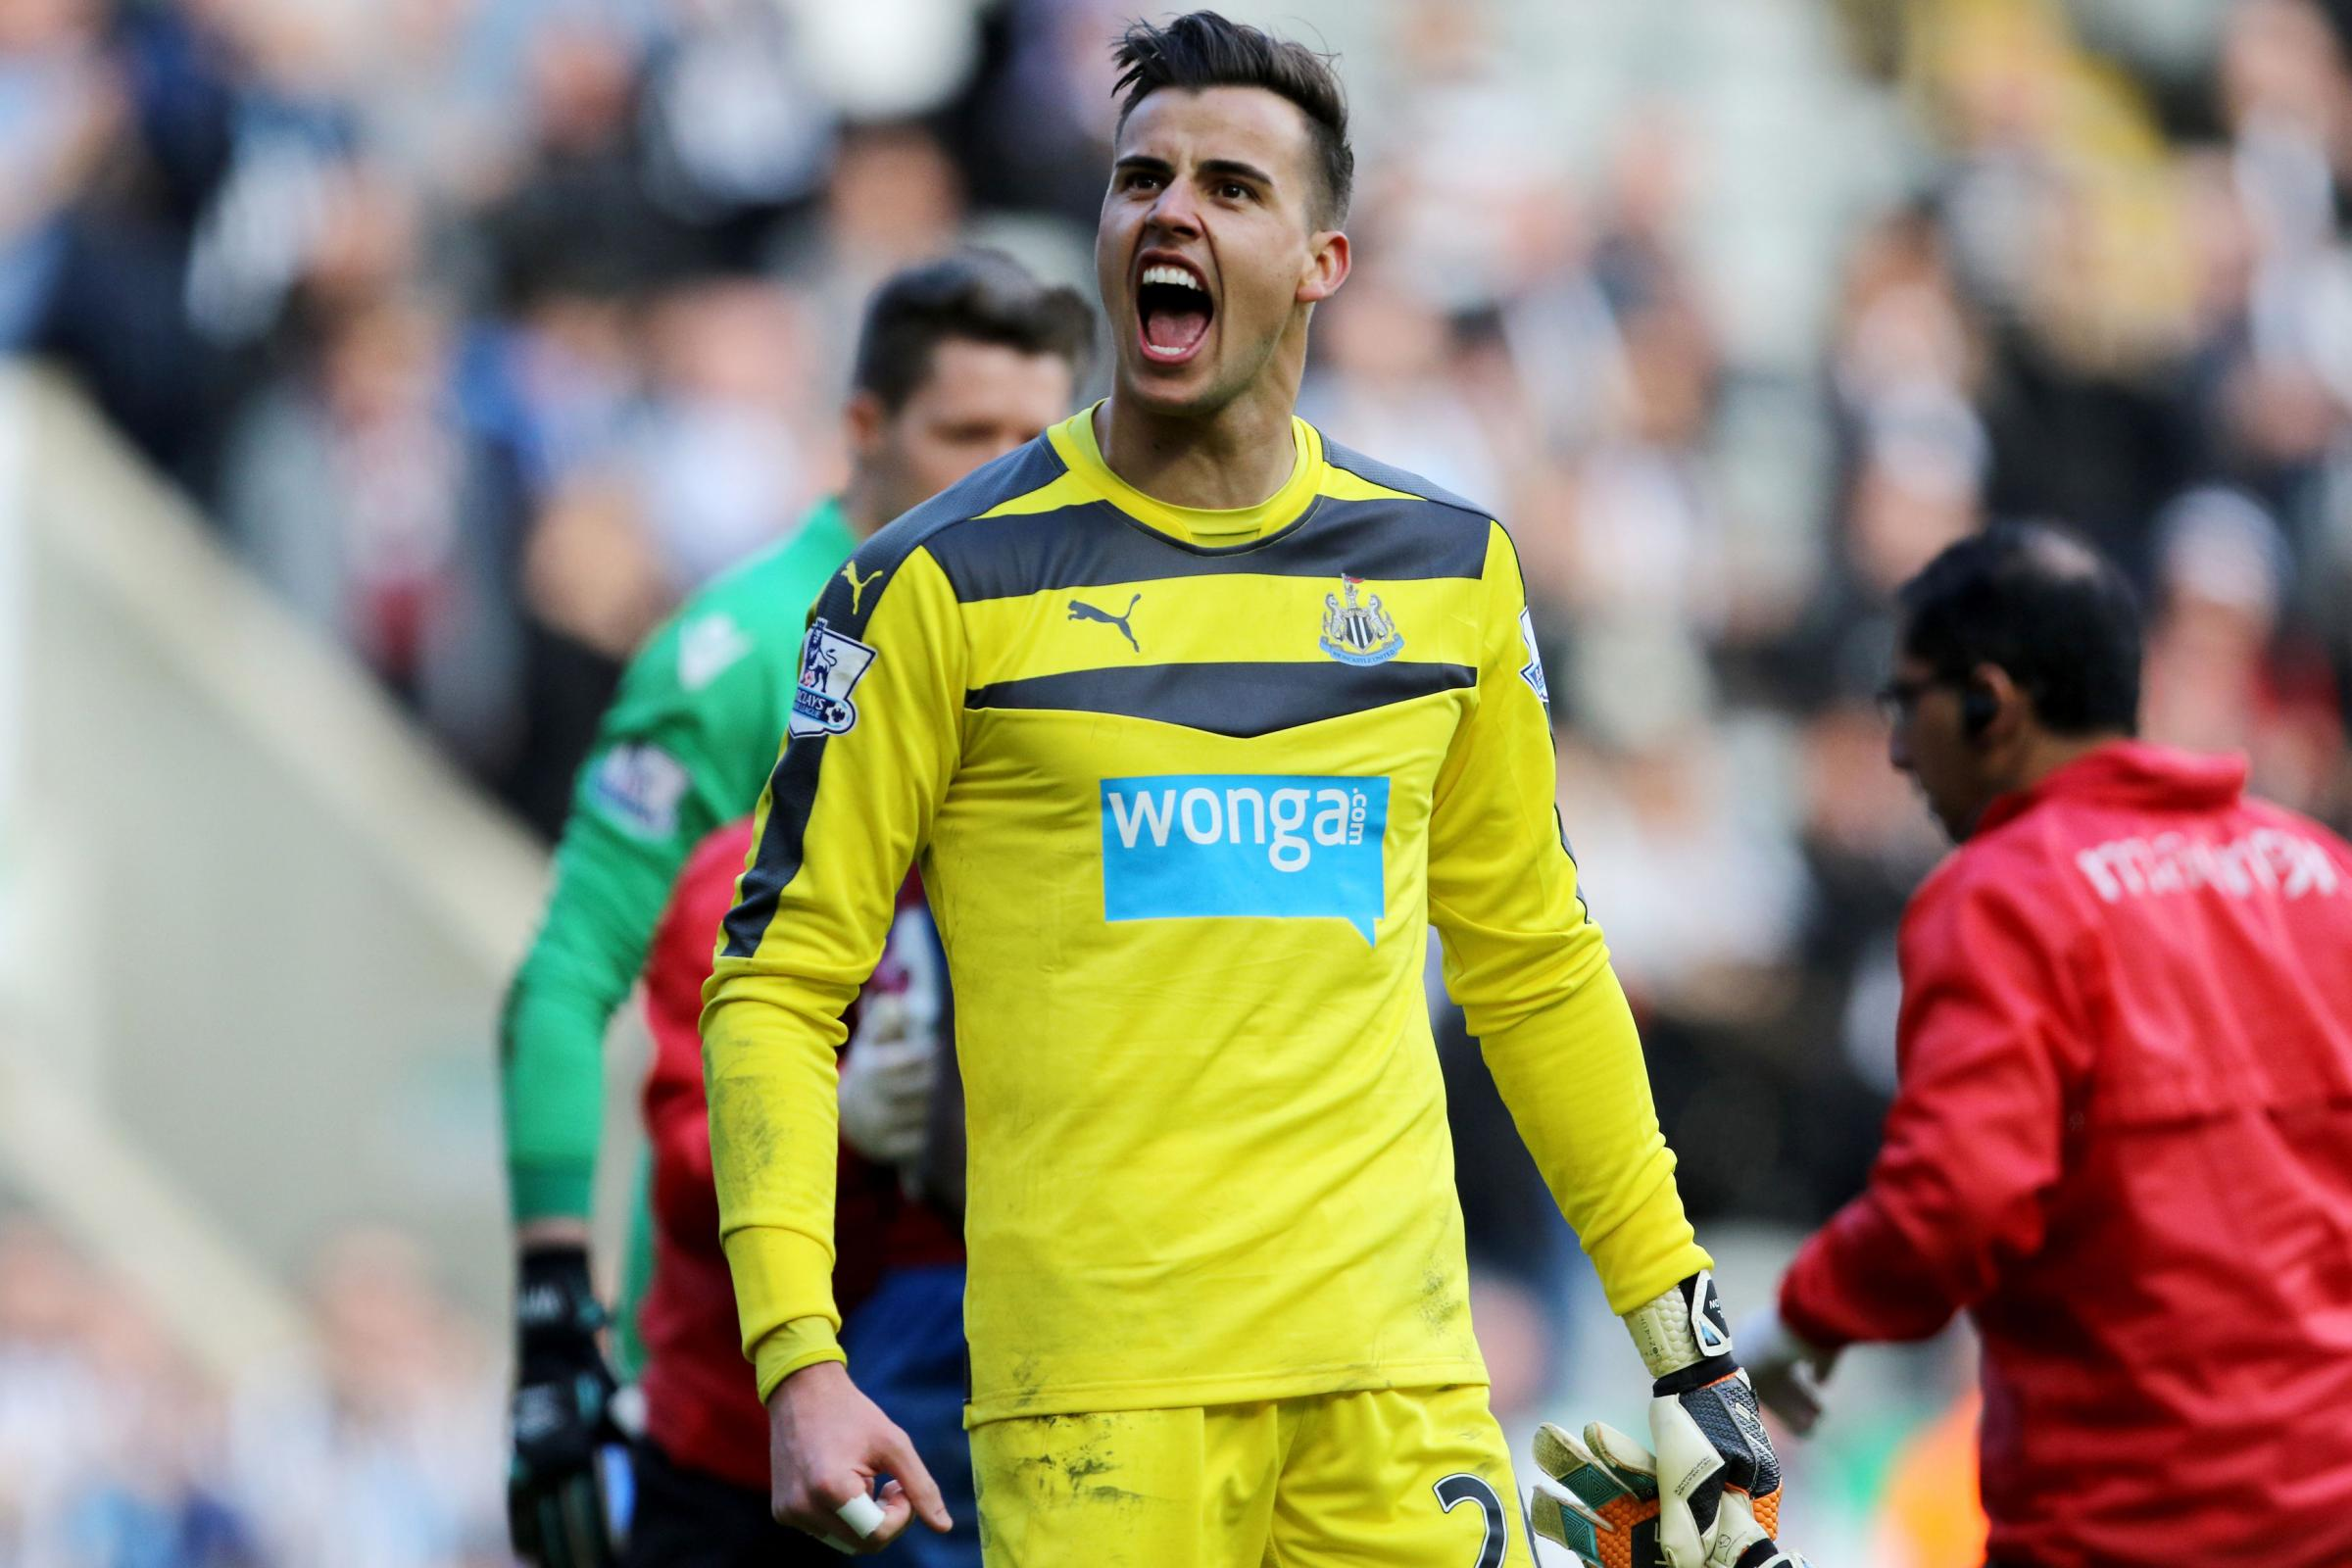 KEY MAN: Karl Darlow has emerged as a pivotal performer since establishing himself in Newcastle's first team